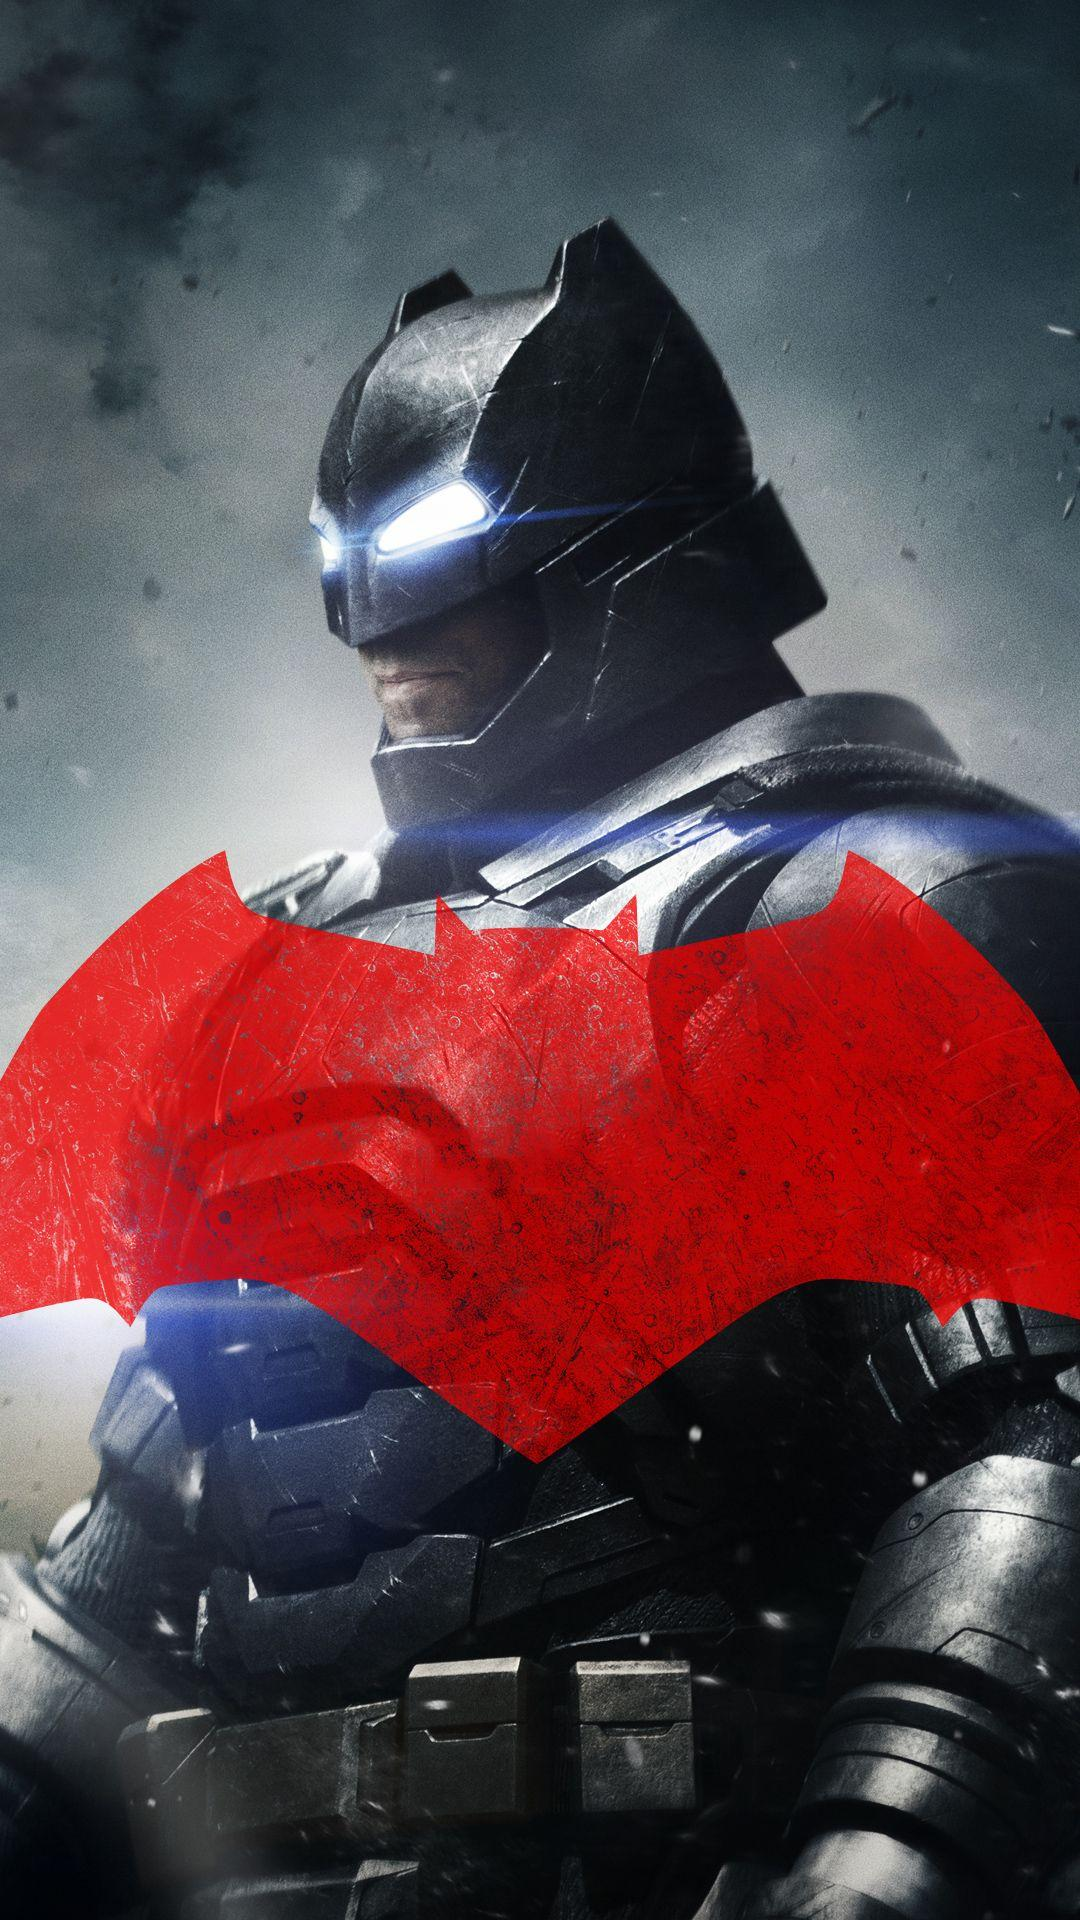 Batman vs Superman Ben Affleck Android Wallpapers free download